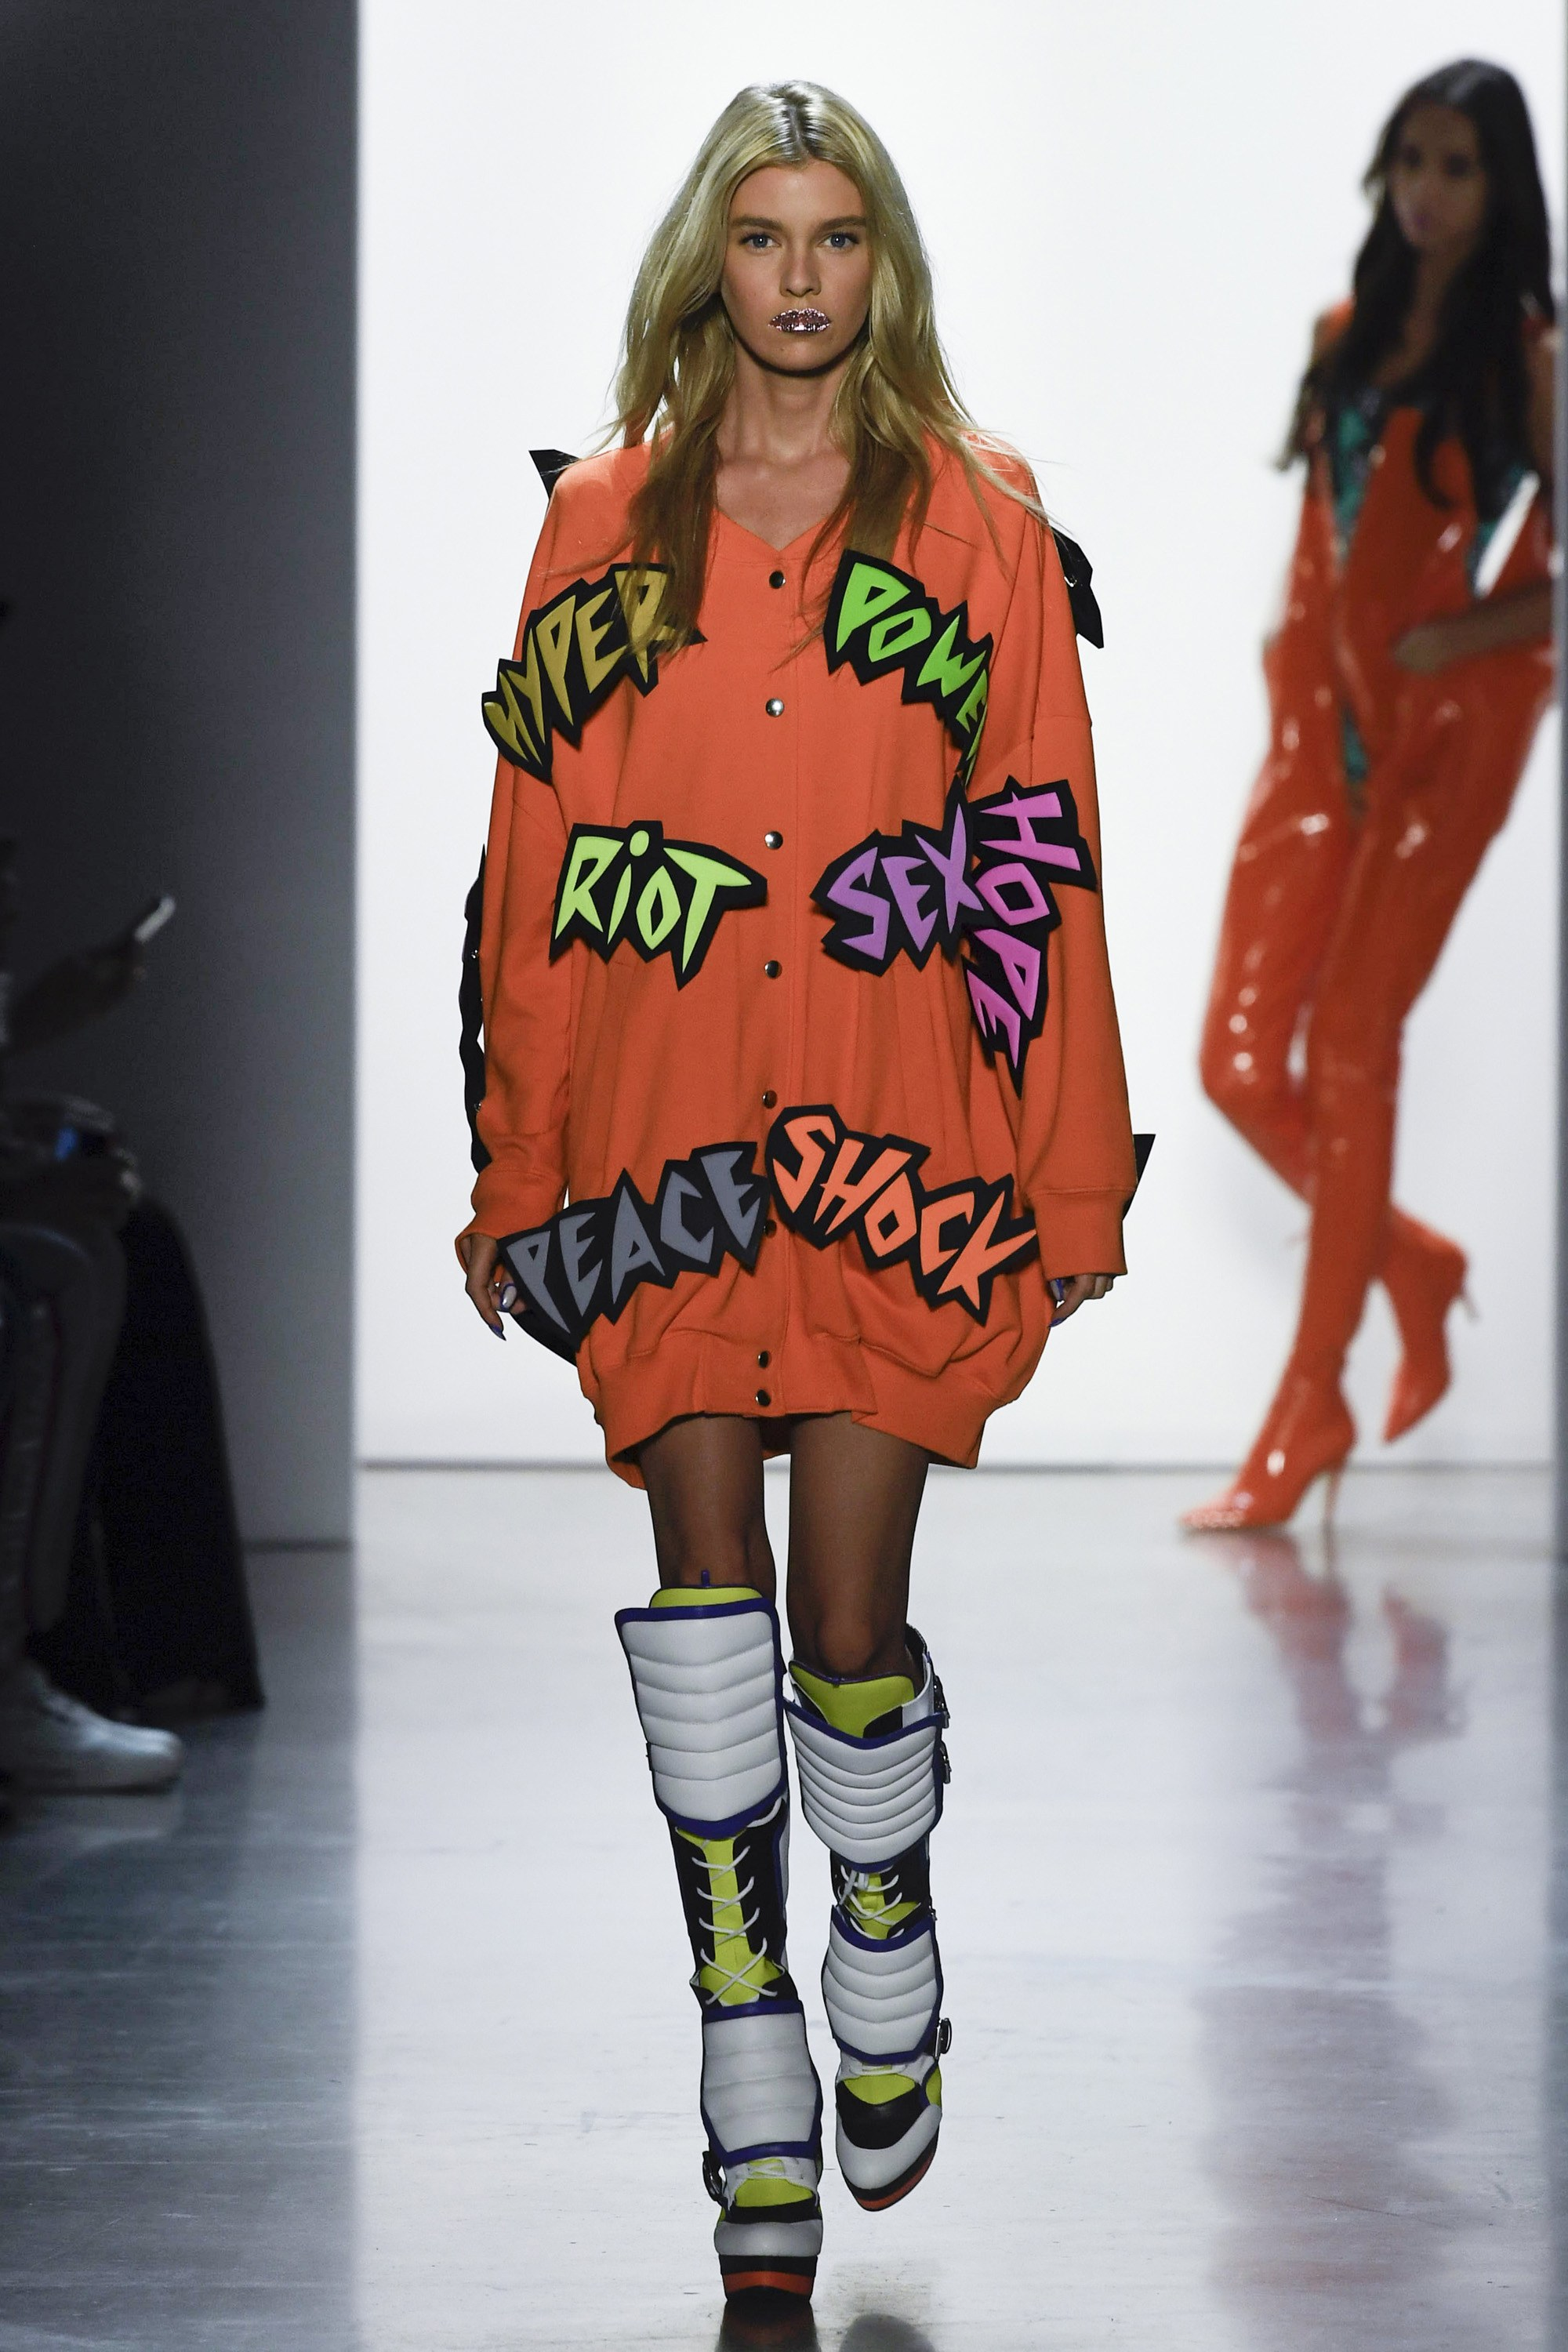 Collectors' Edition: Jeremy Scott Fans Just Want to Have Fun